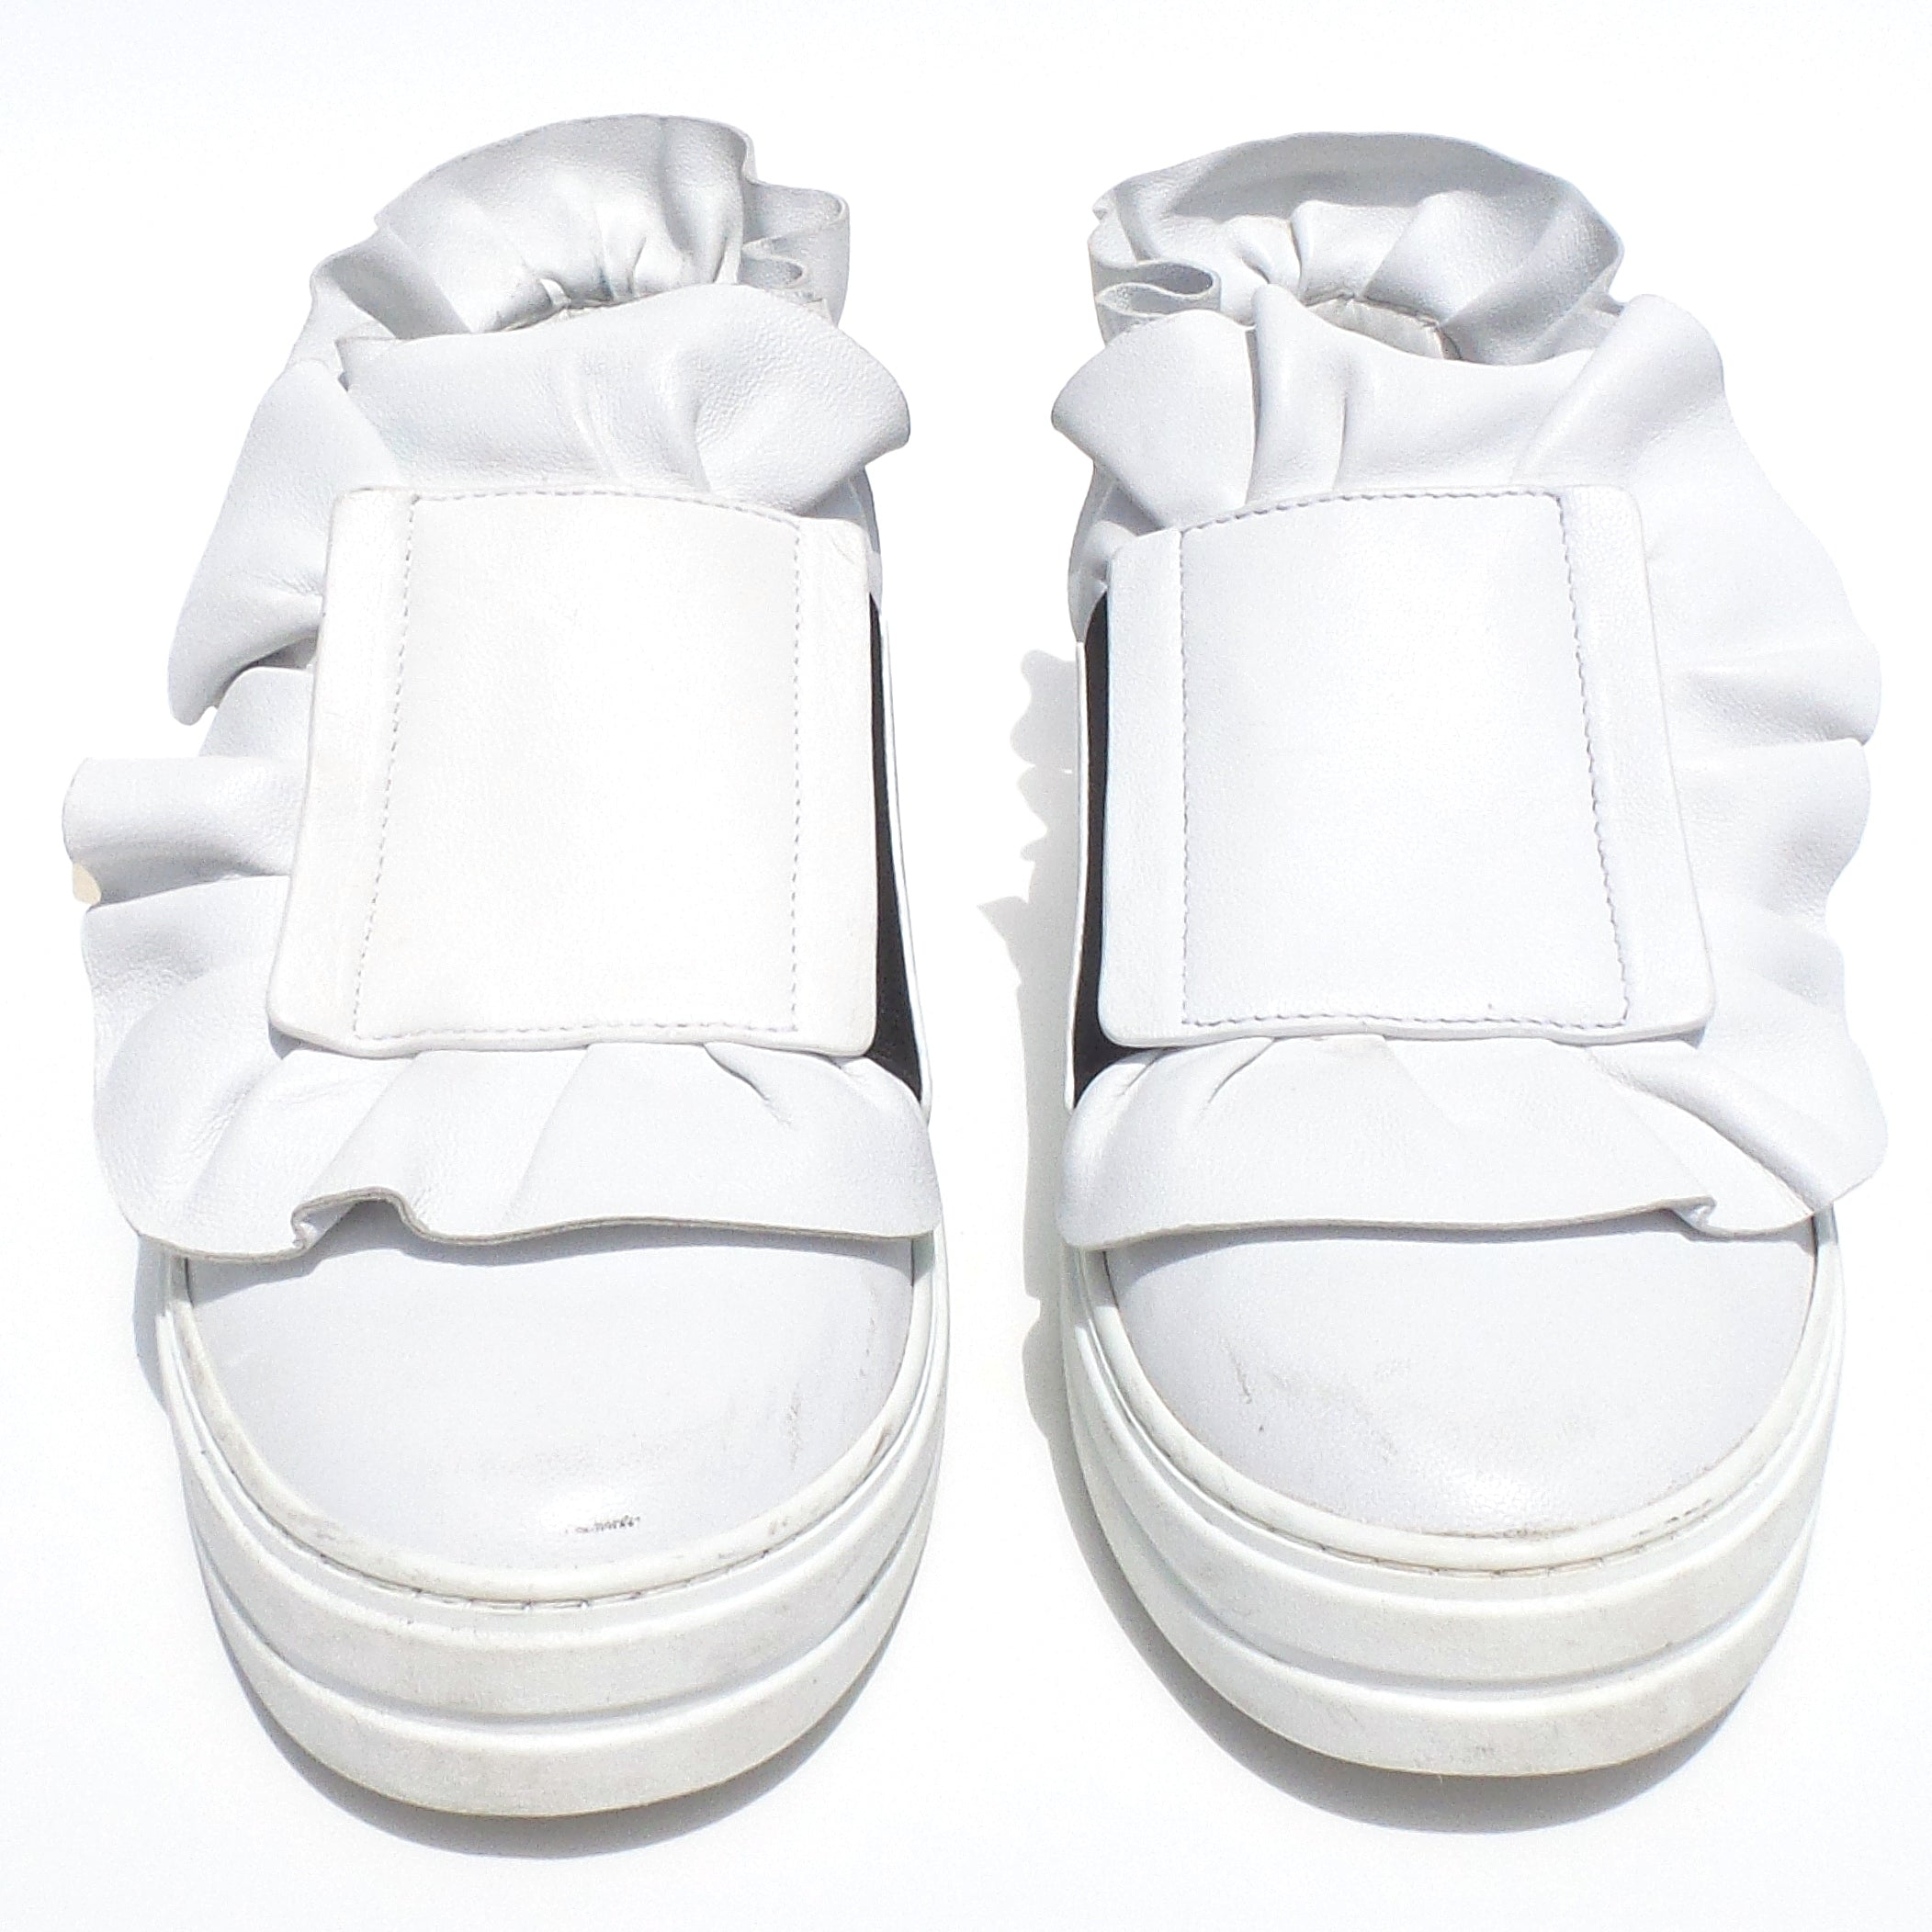 ROGER VIVIER Sneaky Viv White Leather Ruffled Trim Gold Tone Zip Sneakers 39 GUC